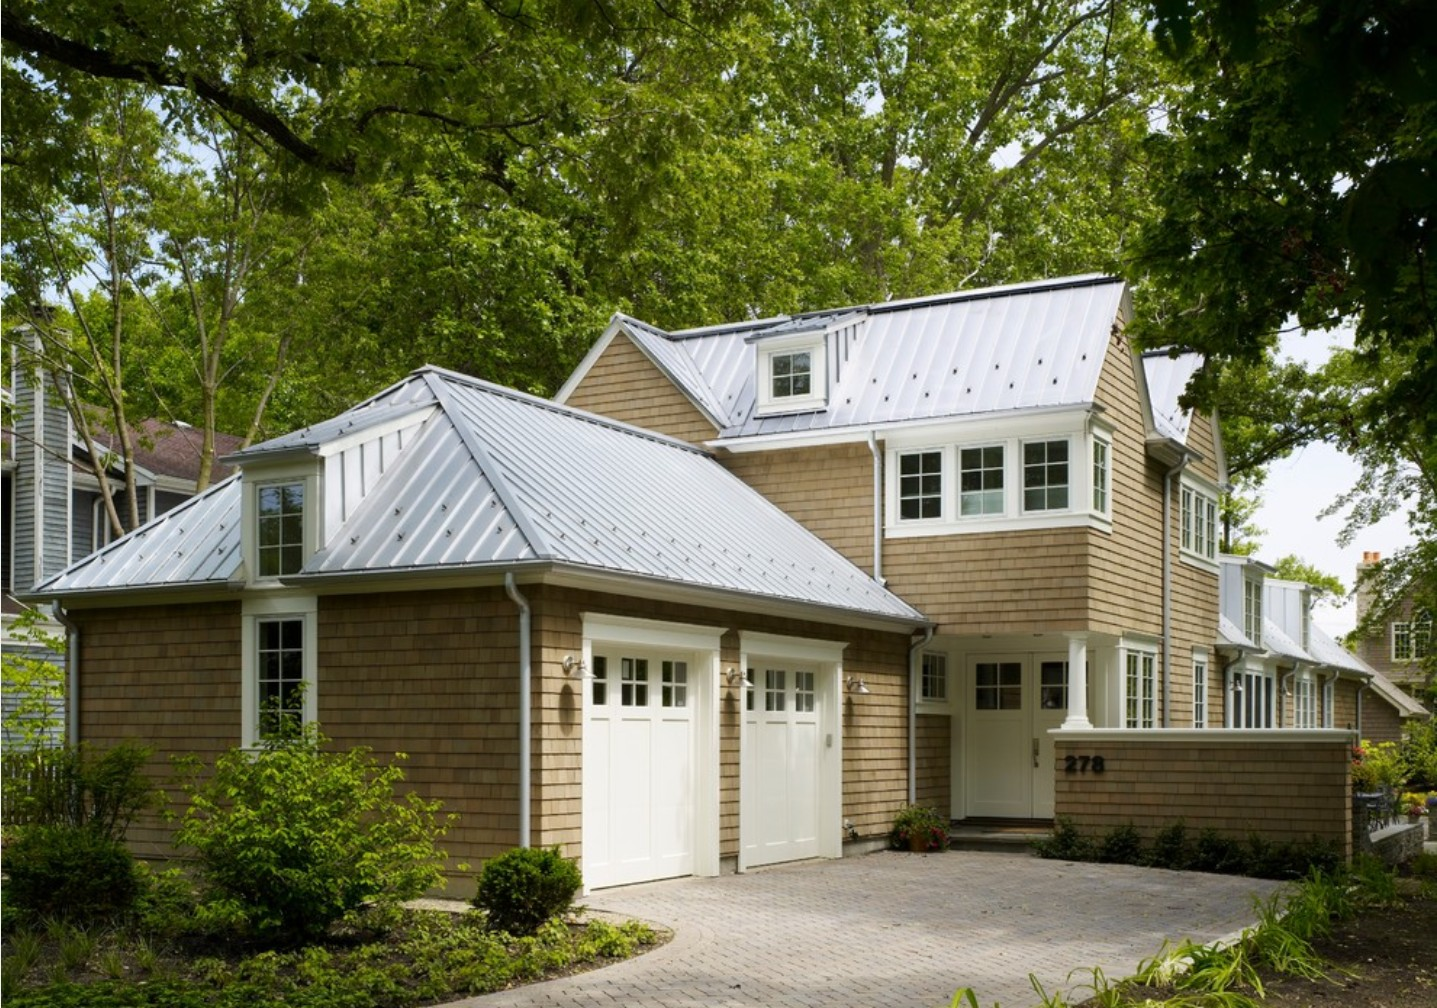 Metal Shingles vs Standing Seam Metal Roof Costs 2018 – Is Metal Roofing Cheaper Than Shingles